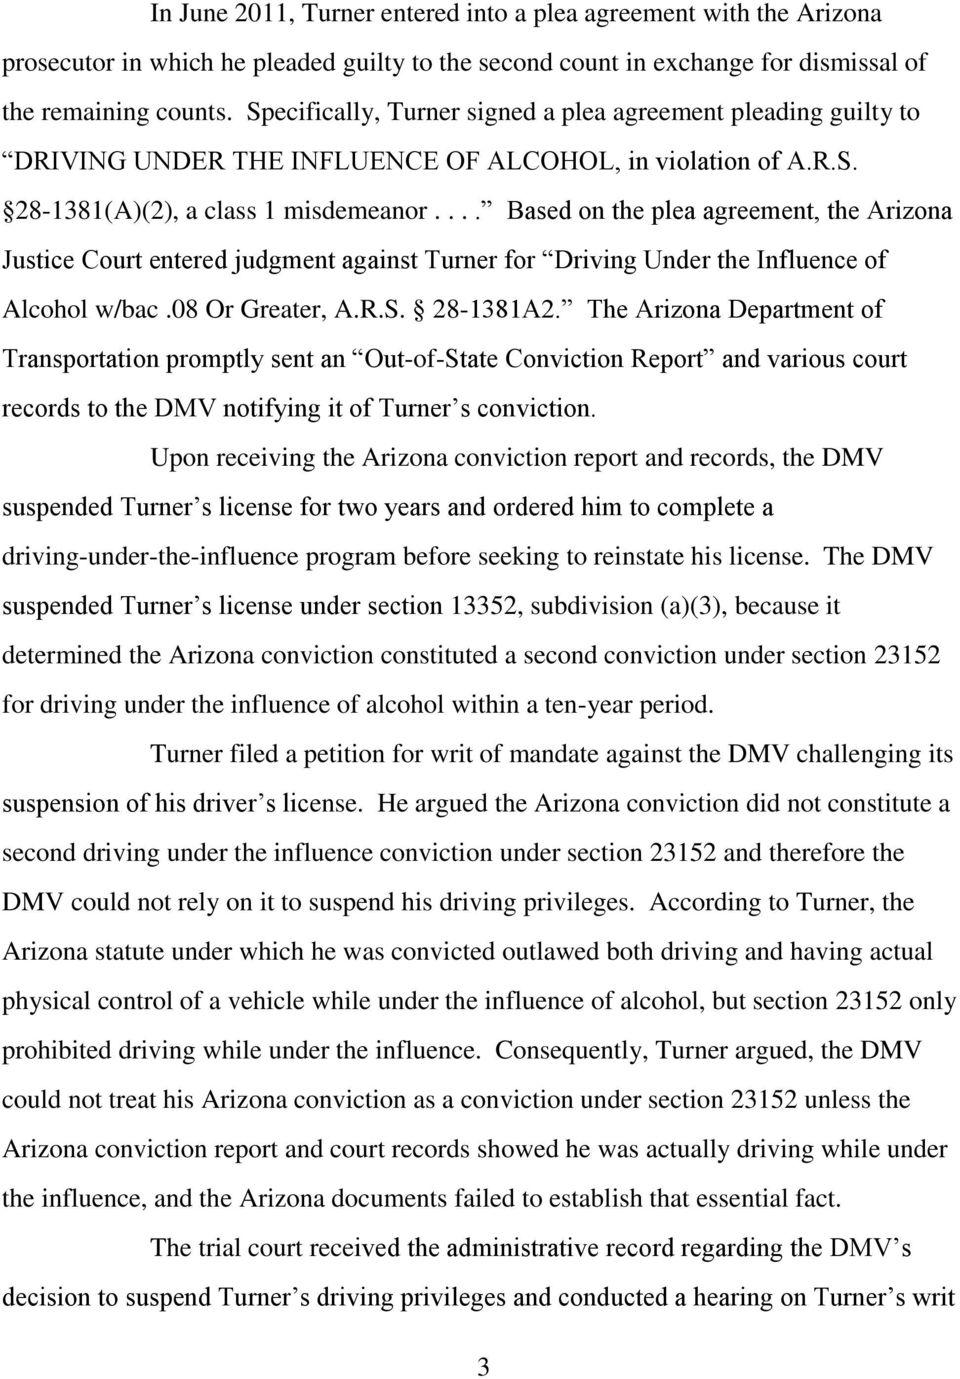 ... Based on the plea agreement, the Arizona Justice Court entered judgment against Turner for Driving Under the Influence of Alcohol w/bac.08 Or Greater, A.R.S. 28-1381A2.